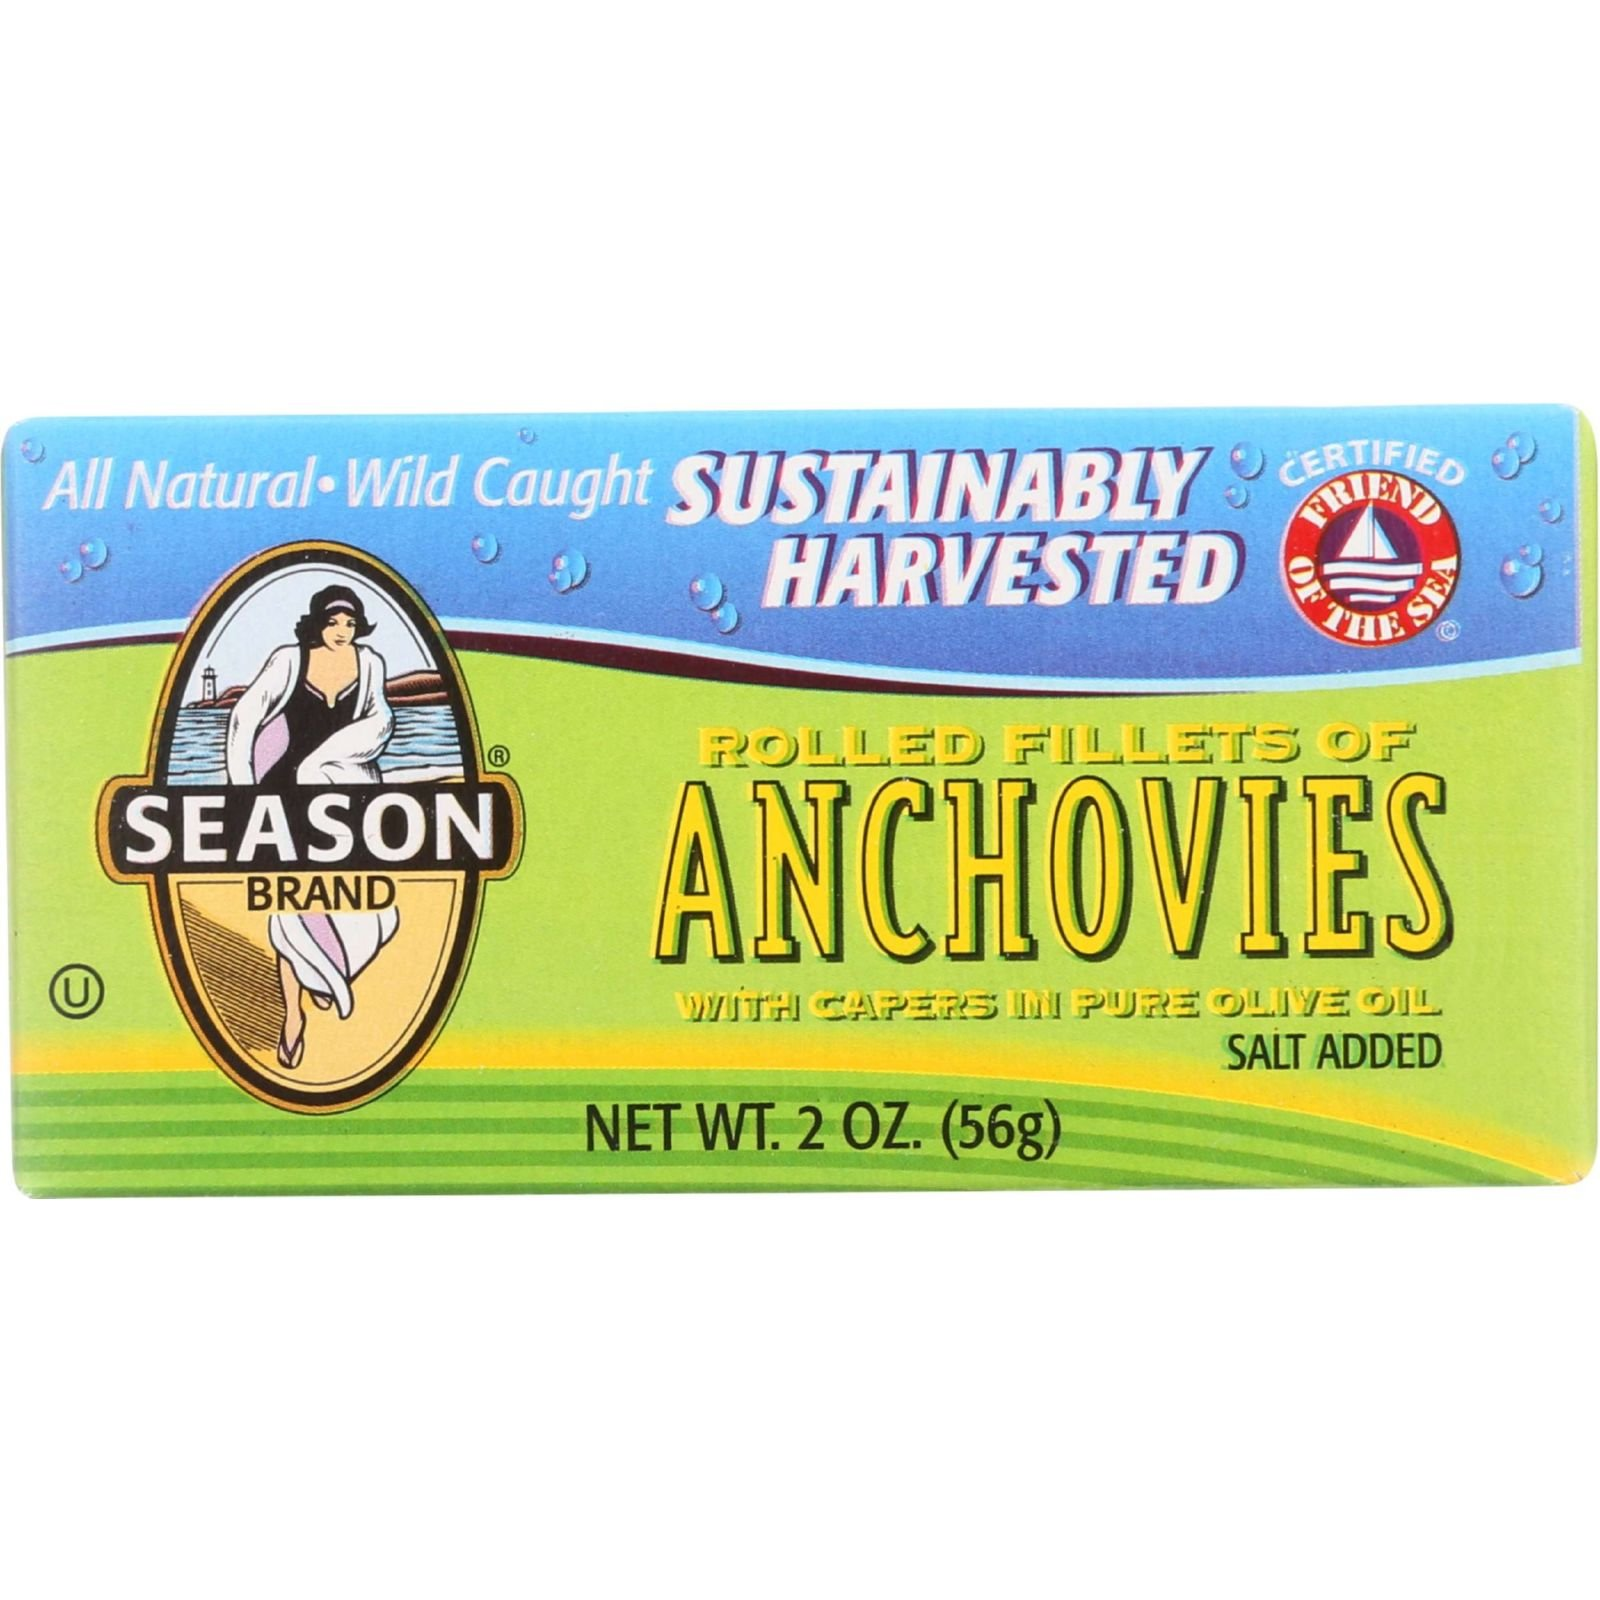 Season Brand Anchovies - Rolled Fillets - Salt Added - 2 oz - case of 25 - All Natural - Wild Caught